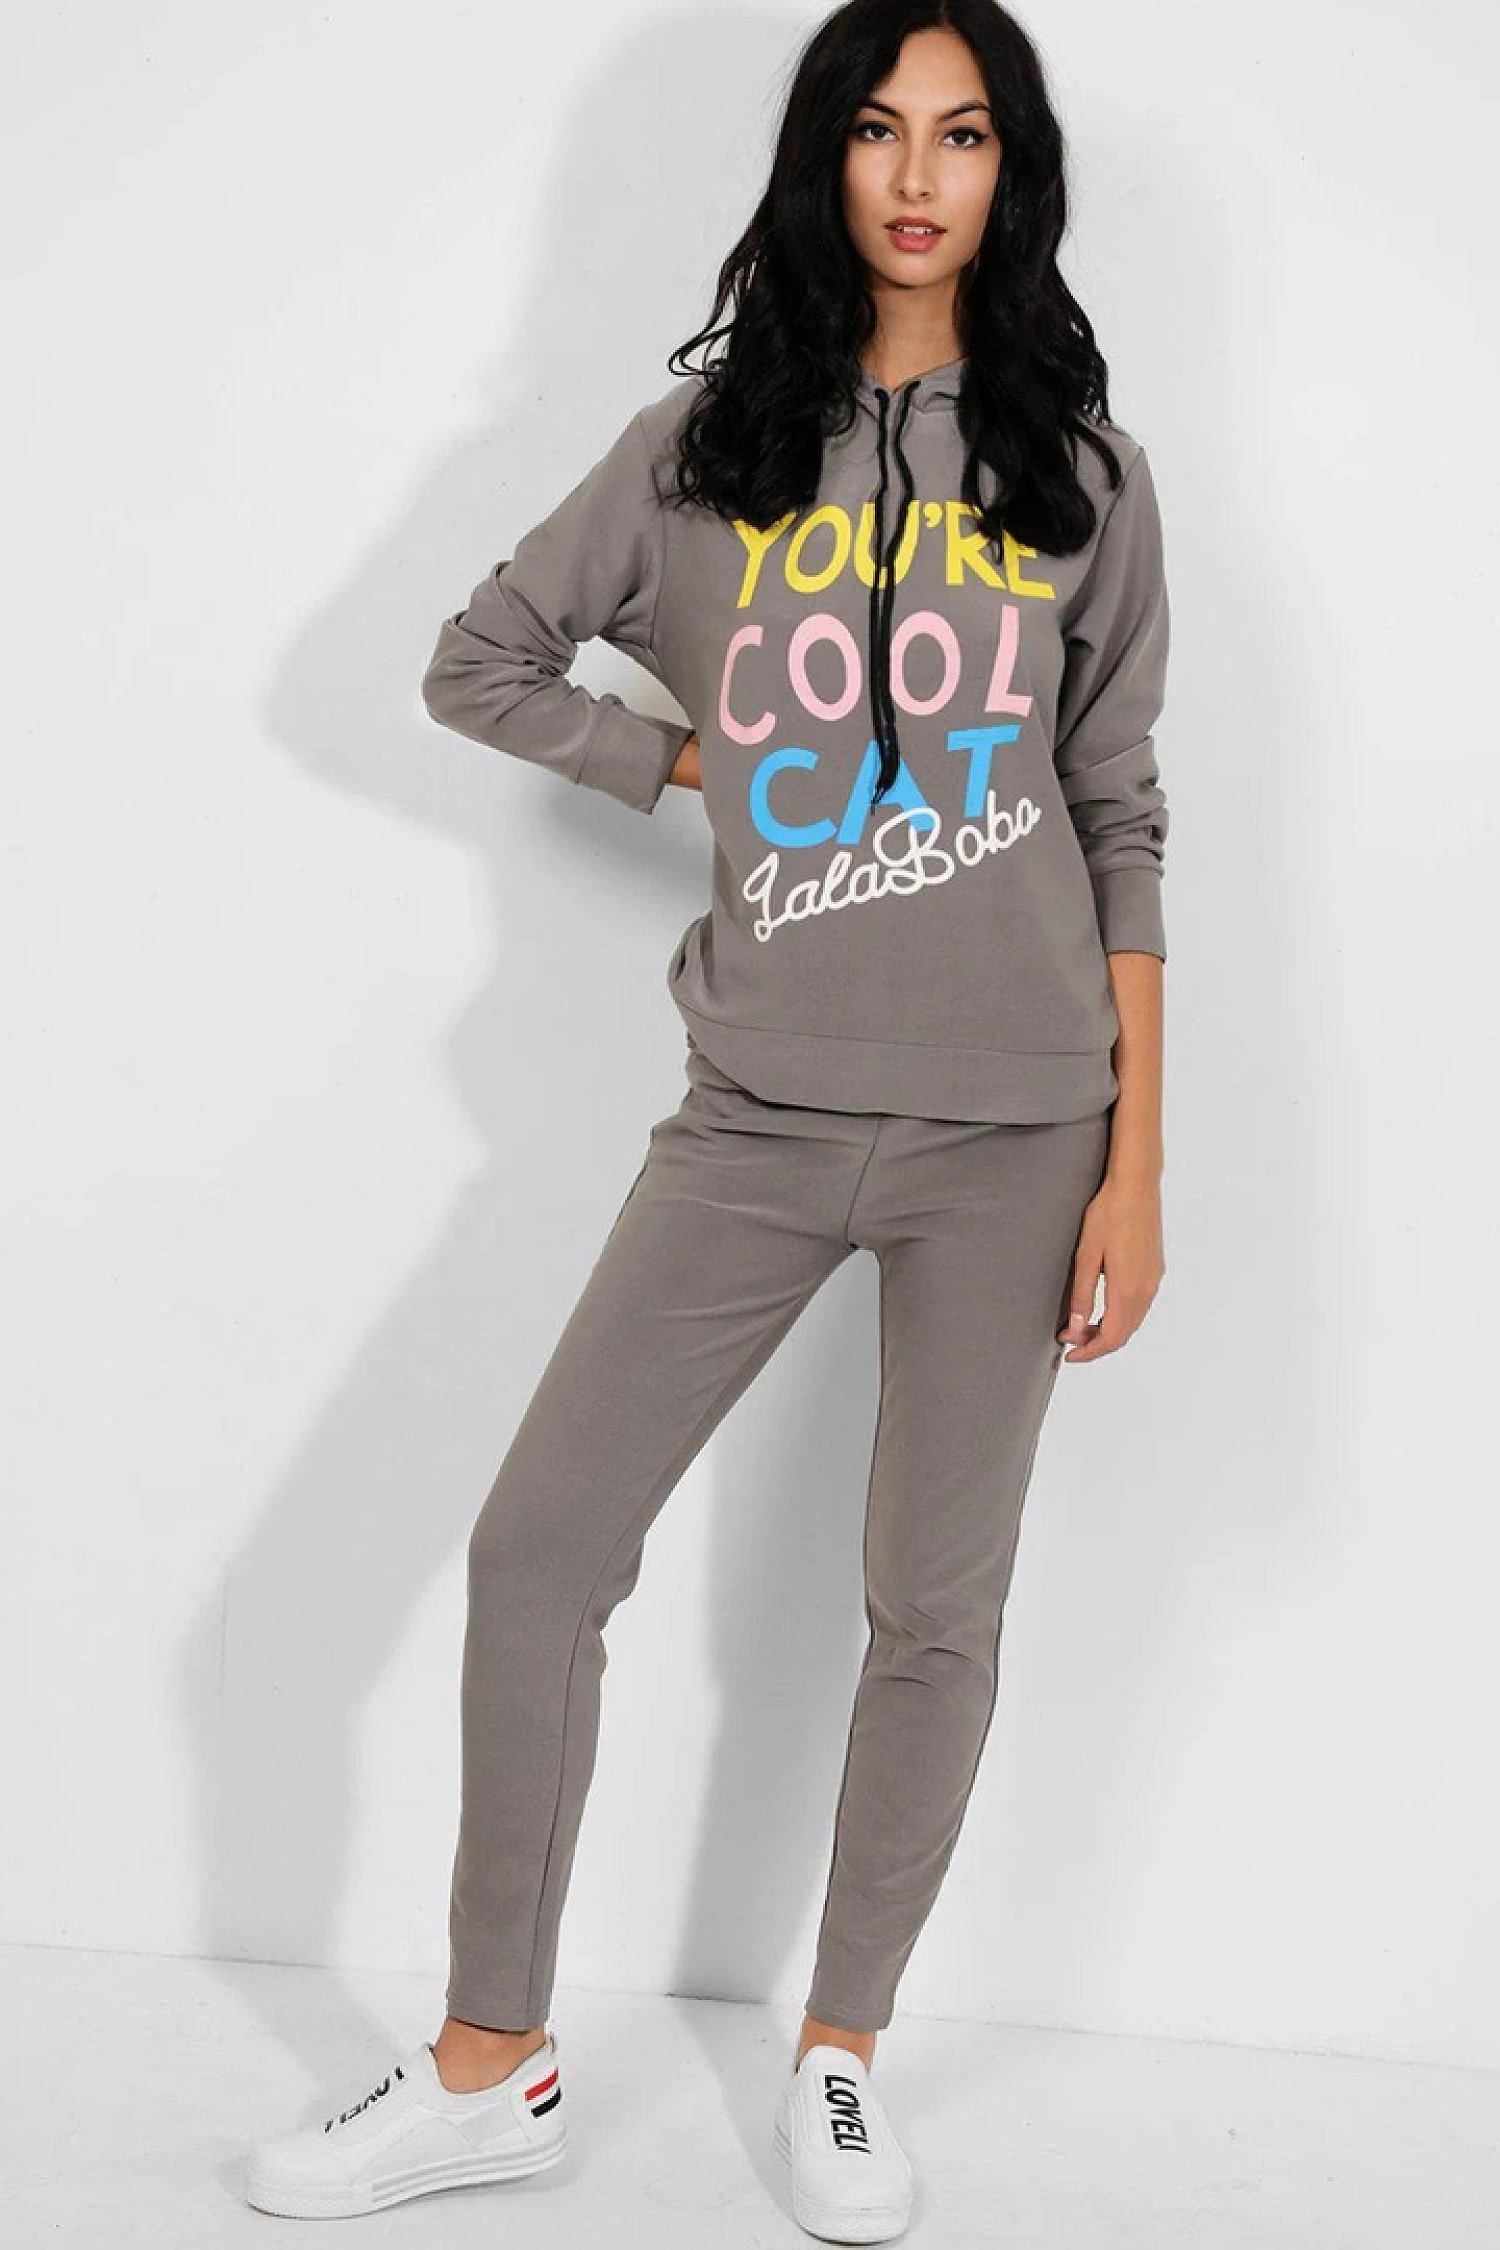 2 Piece Cool Cat Slogan Hooded Tracksuit 8-10, 12-14 Free Postage